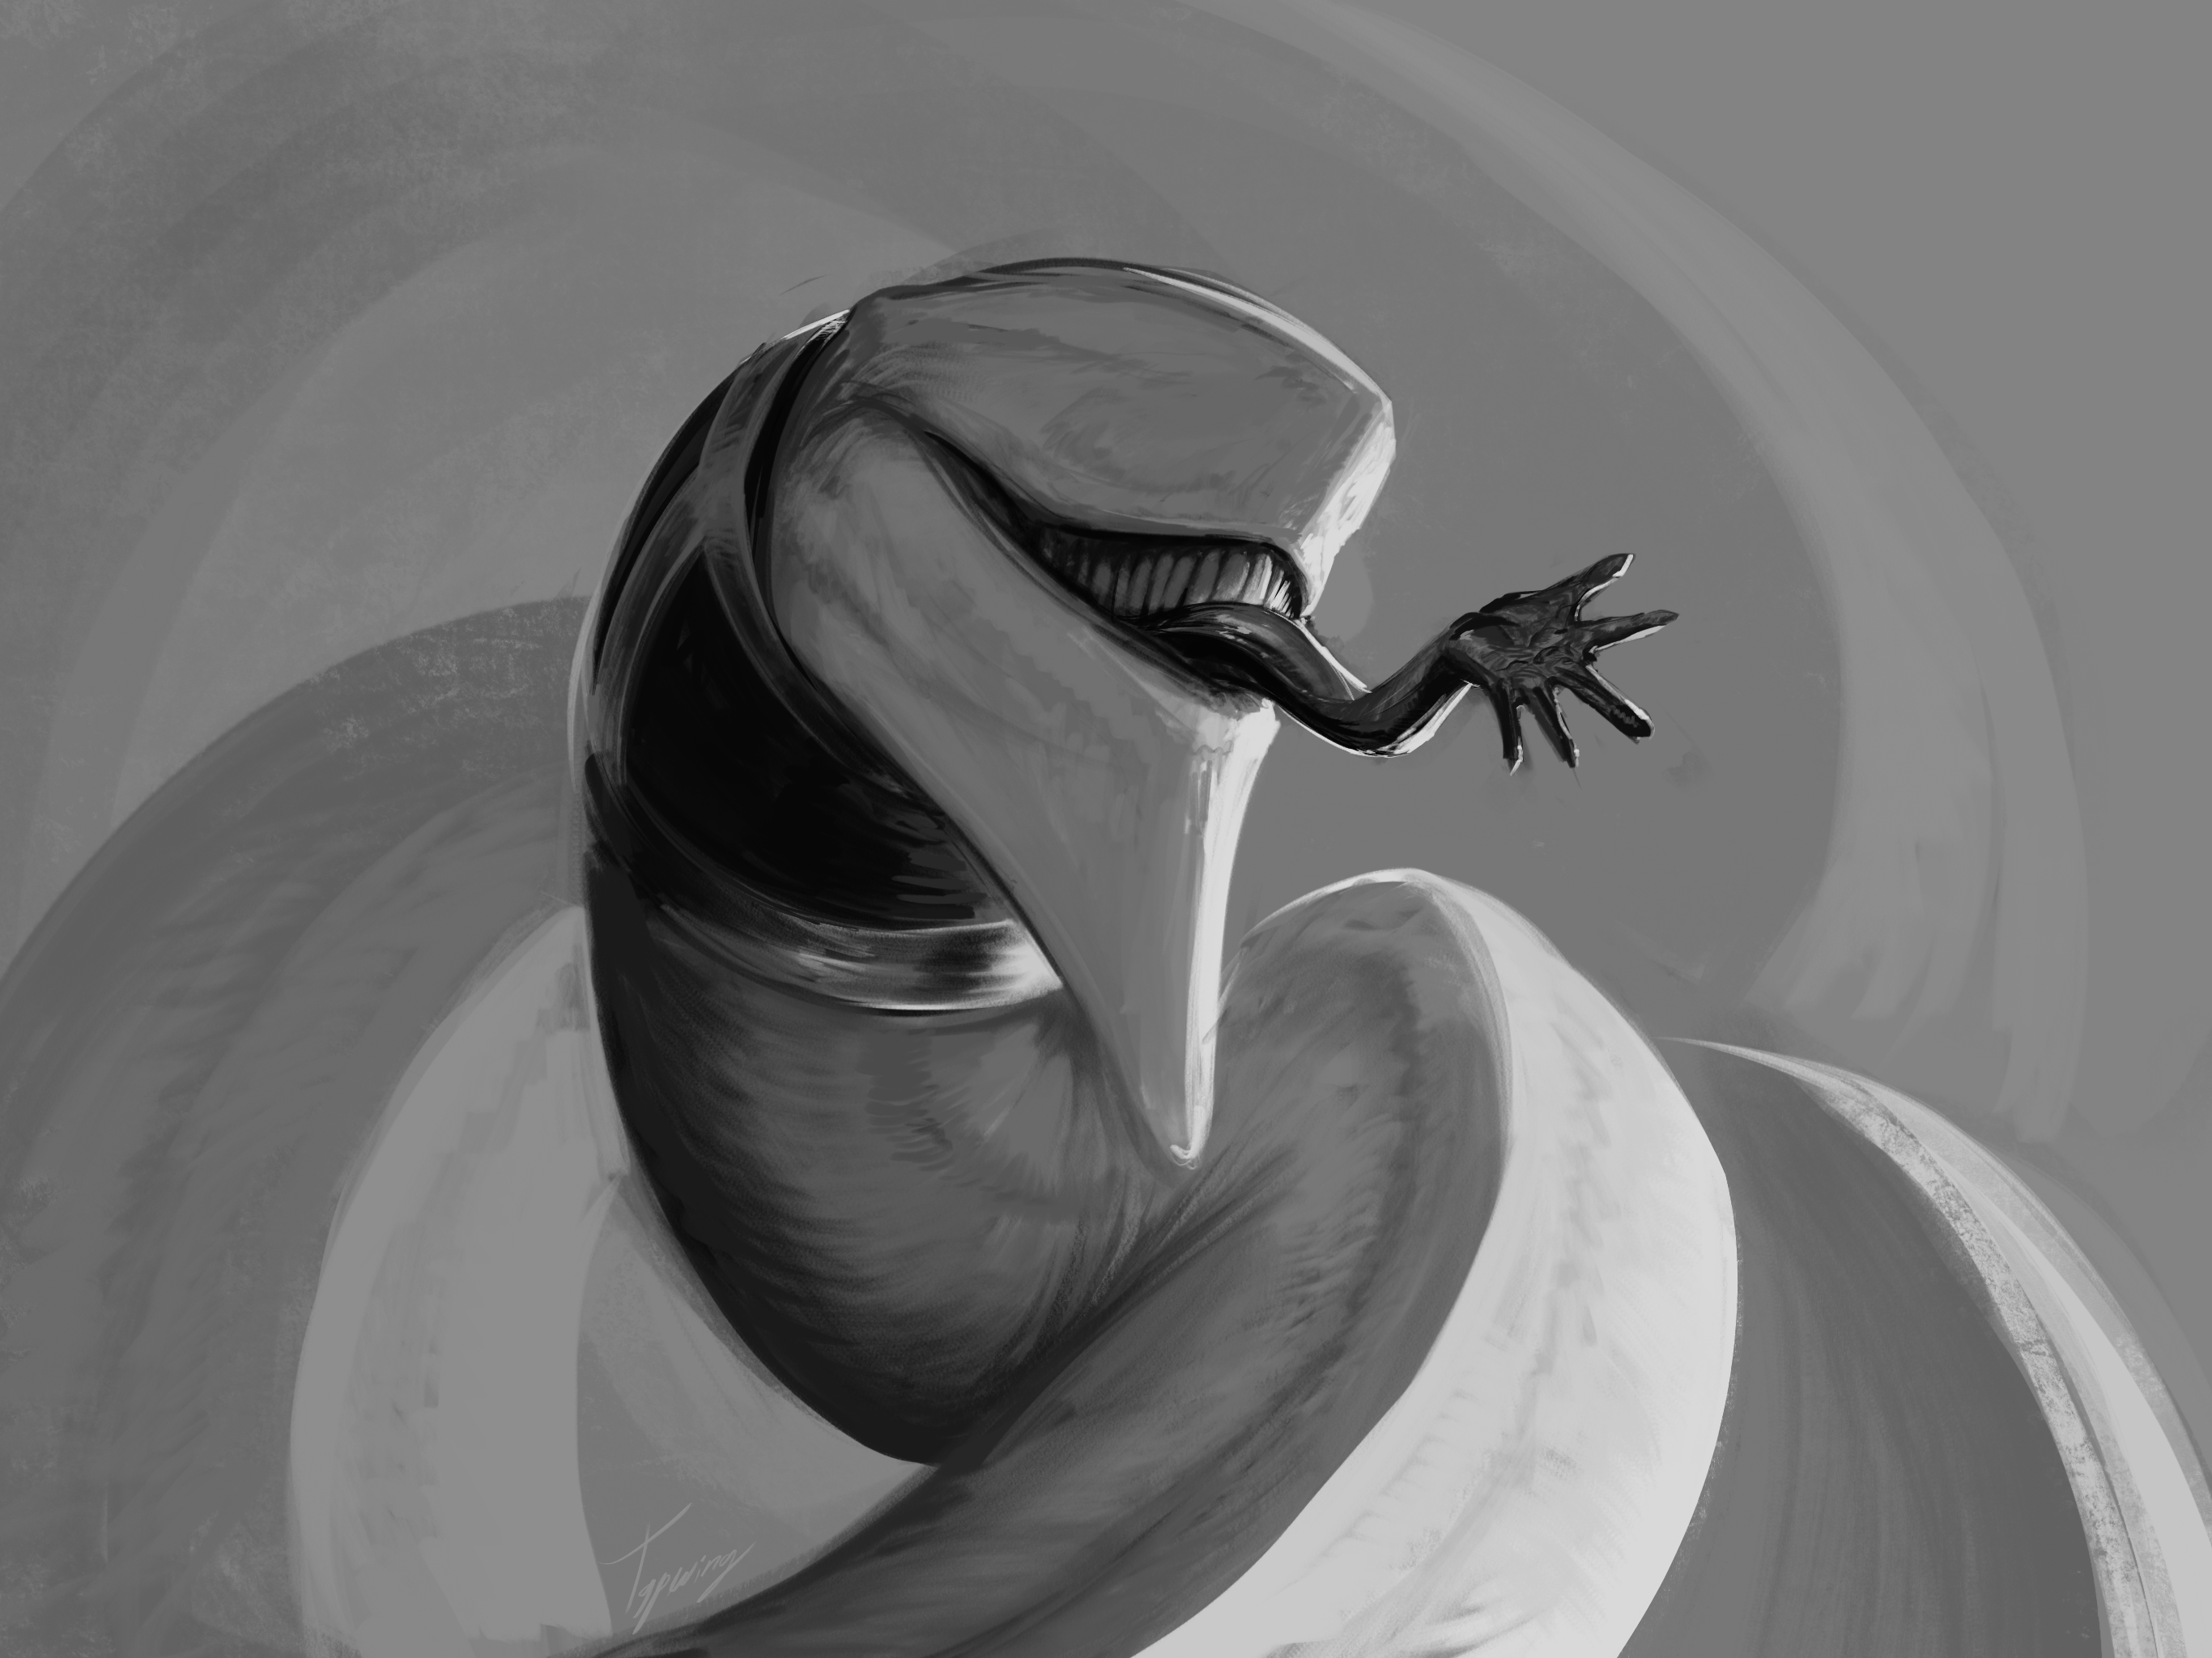 Cottus sketch by Tapwing